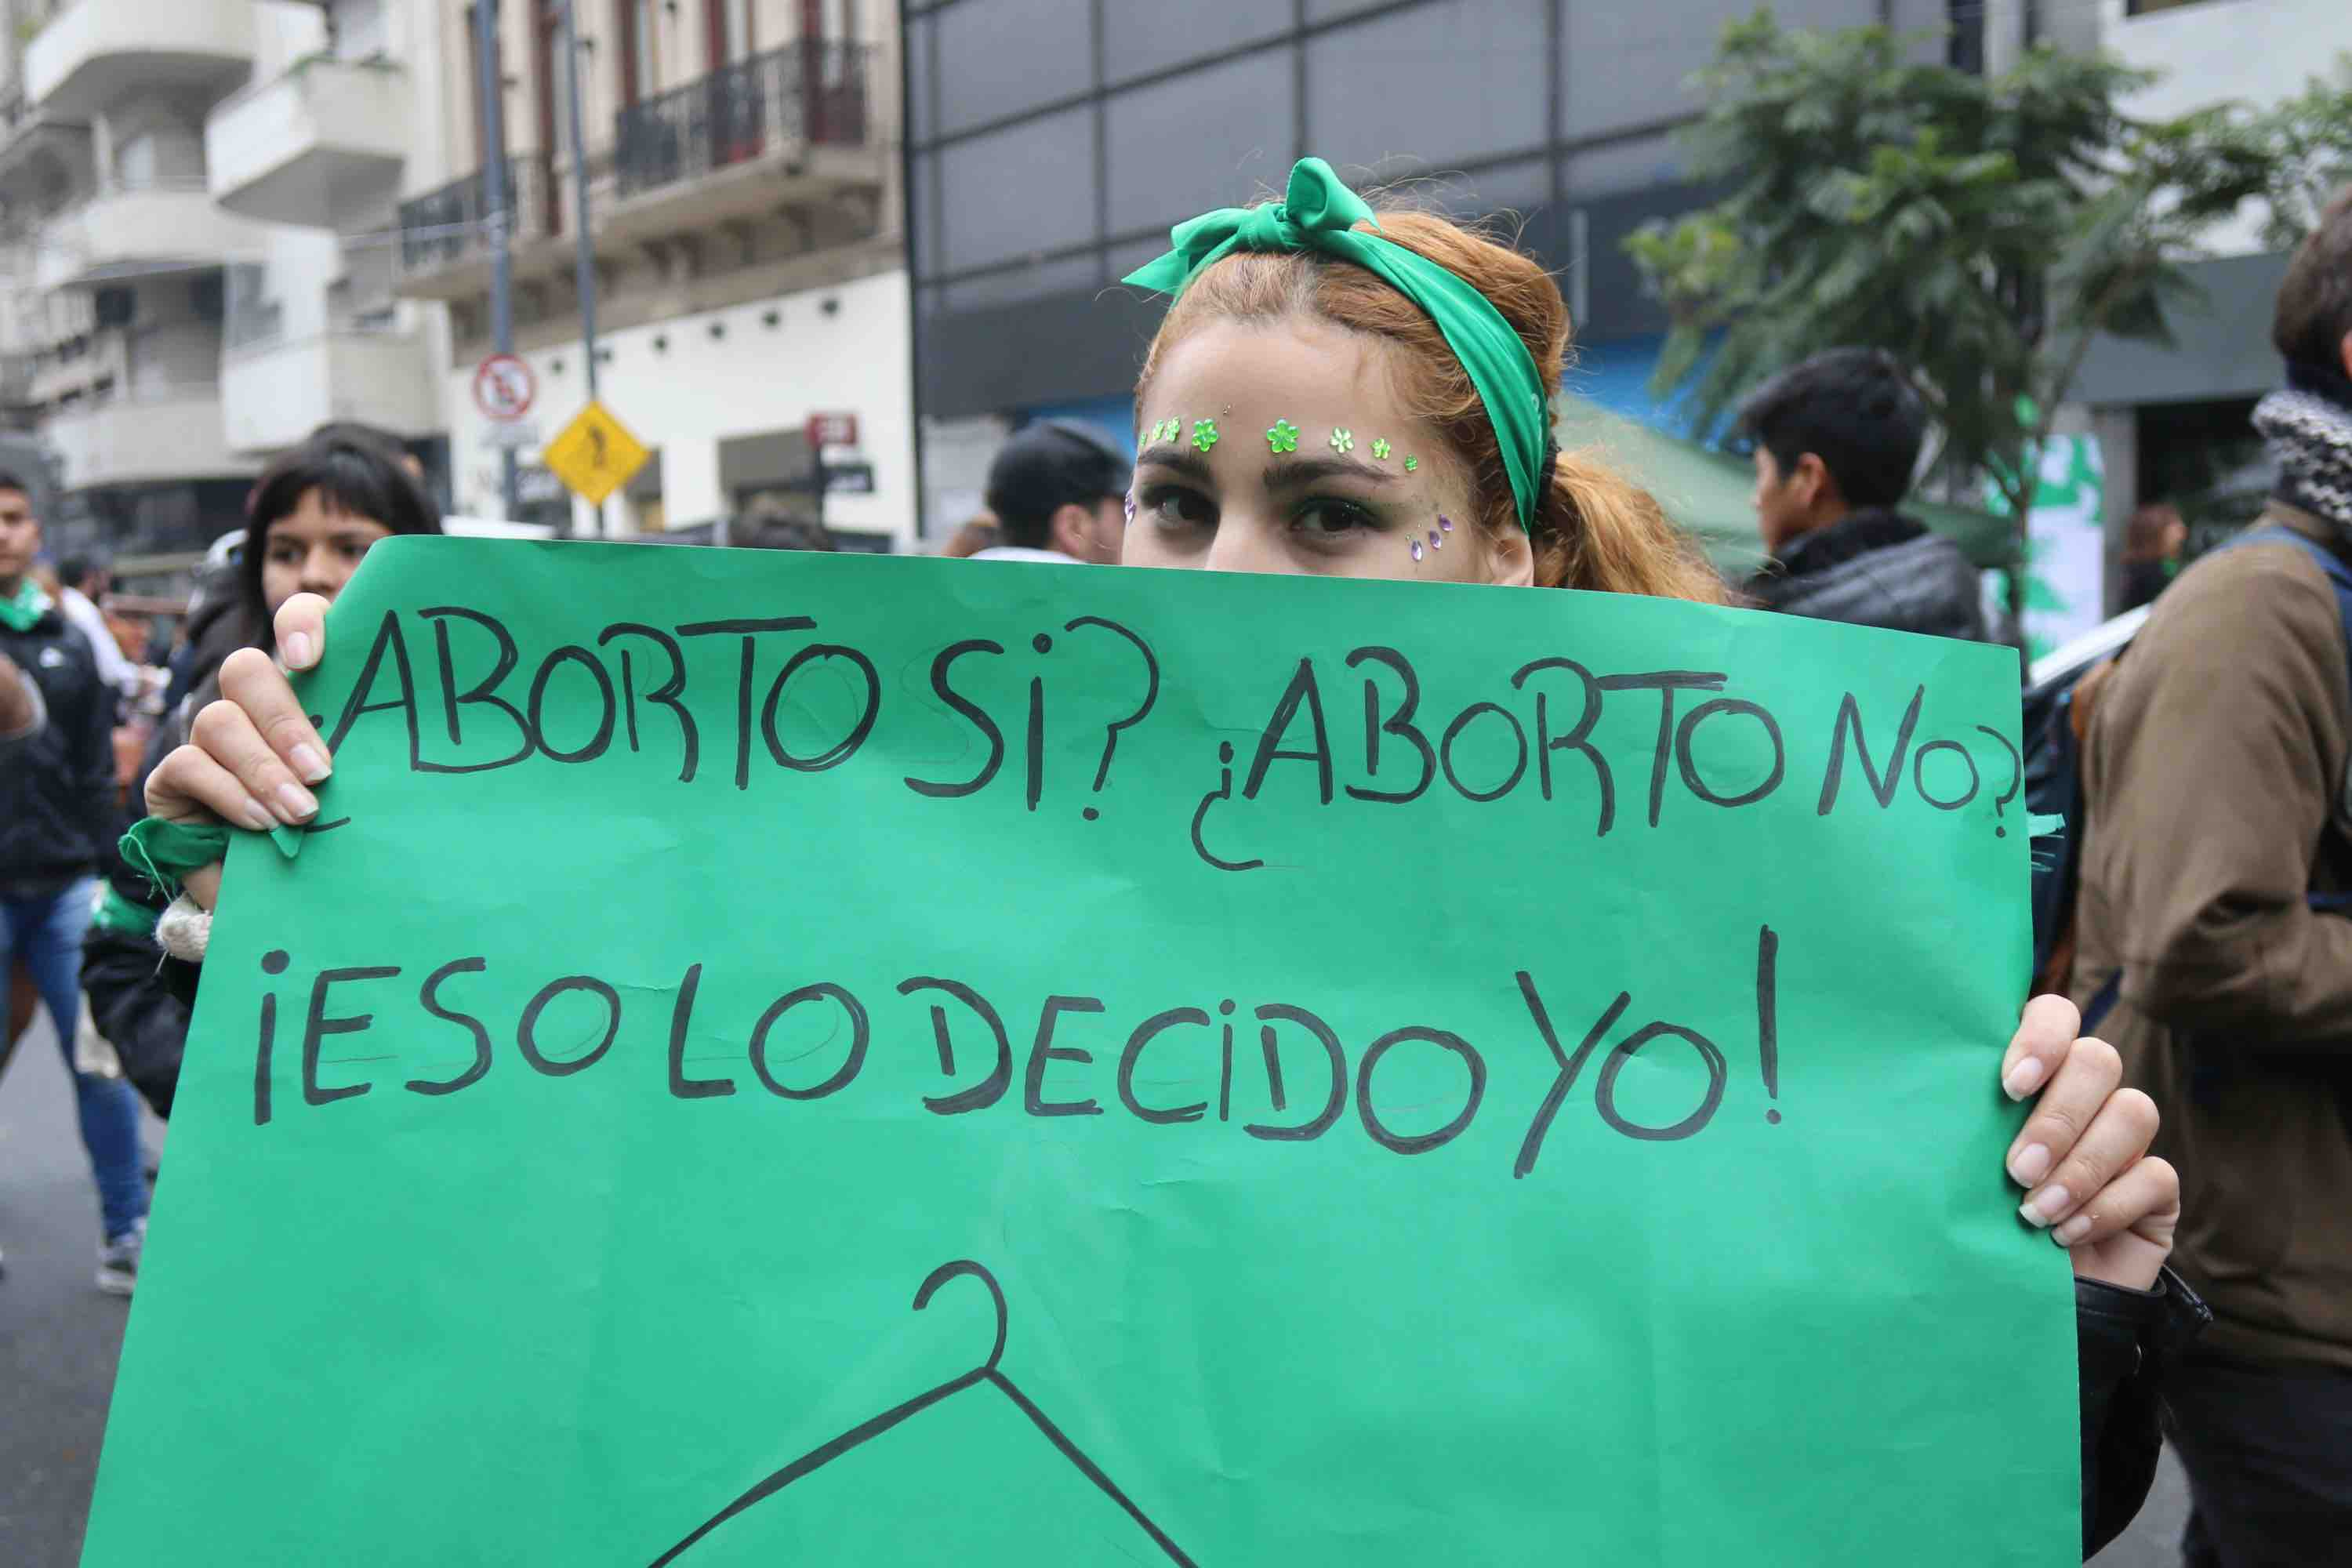 In Scathing Letter, Margaret Atwood Calls Argentina's Abortion Laws 'Slavery'